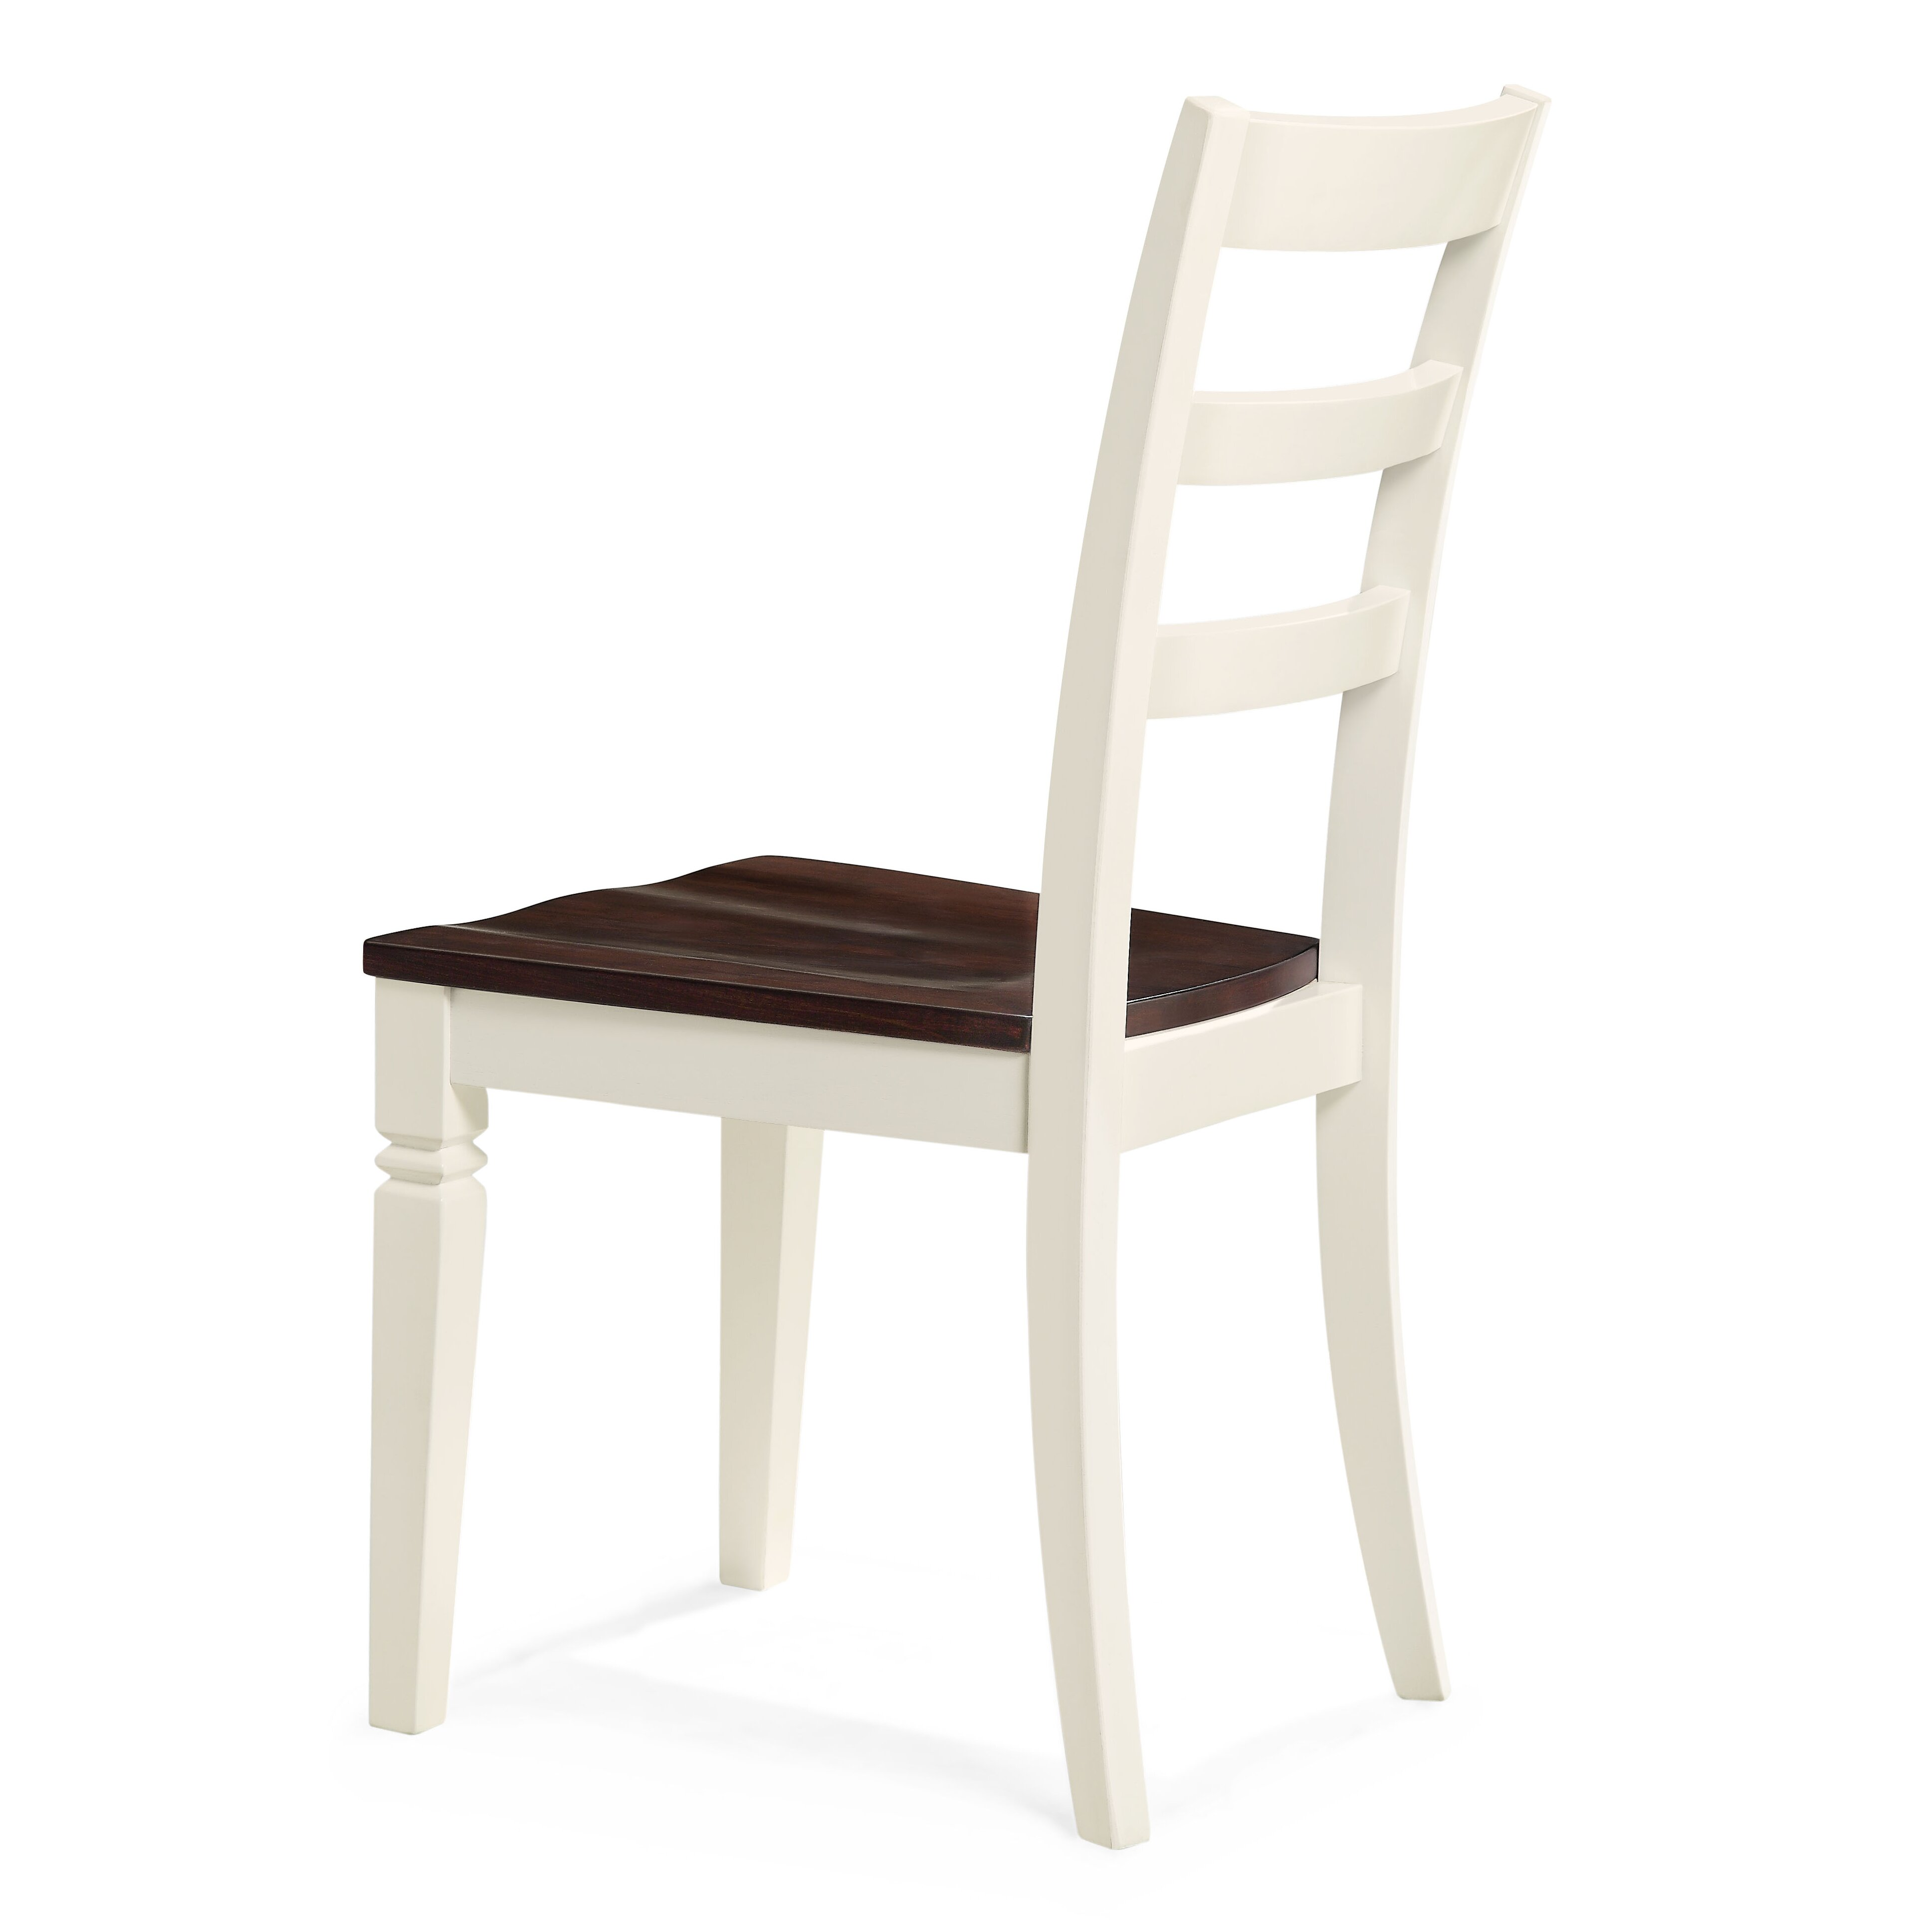 #3C2924 Whalen Furniture Writing Desk Chair & Reviews Wayfair with 3873x3873 px of Best Chair For Writing Desk 38733873 image @ avoidforclosure.info